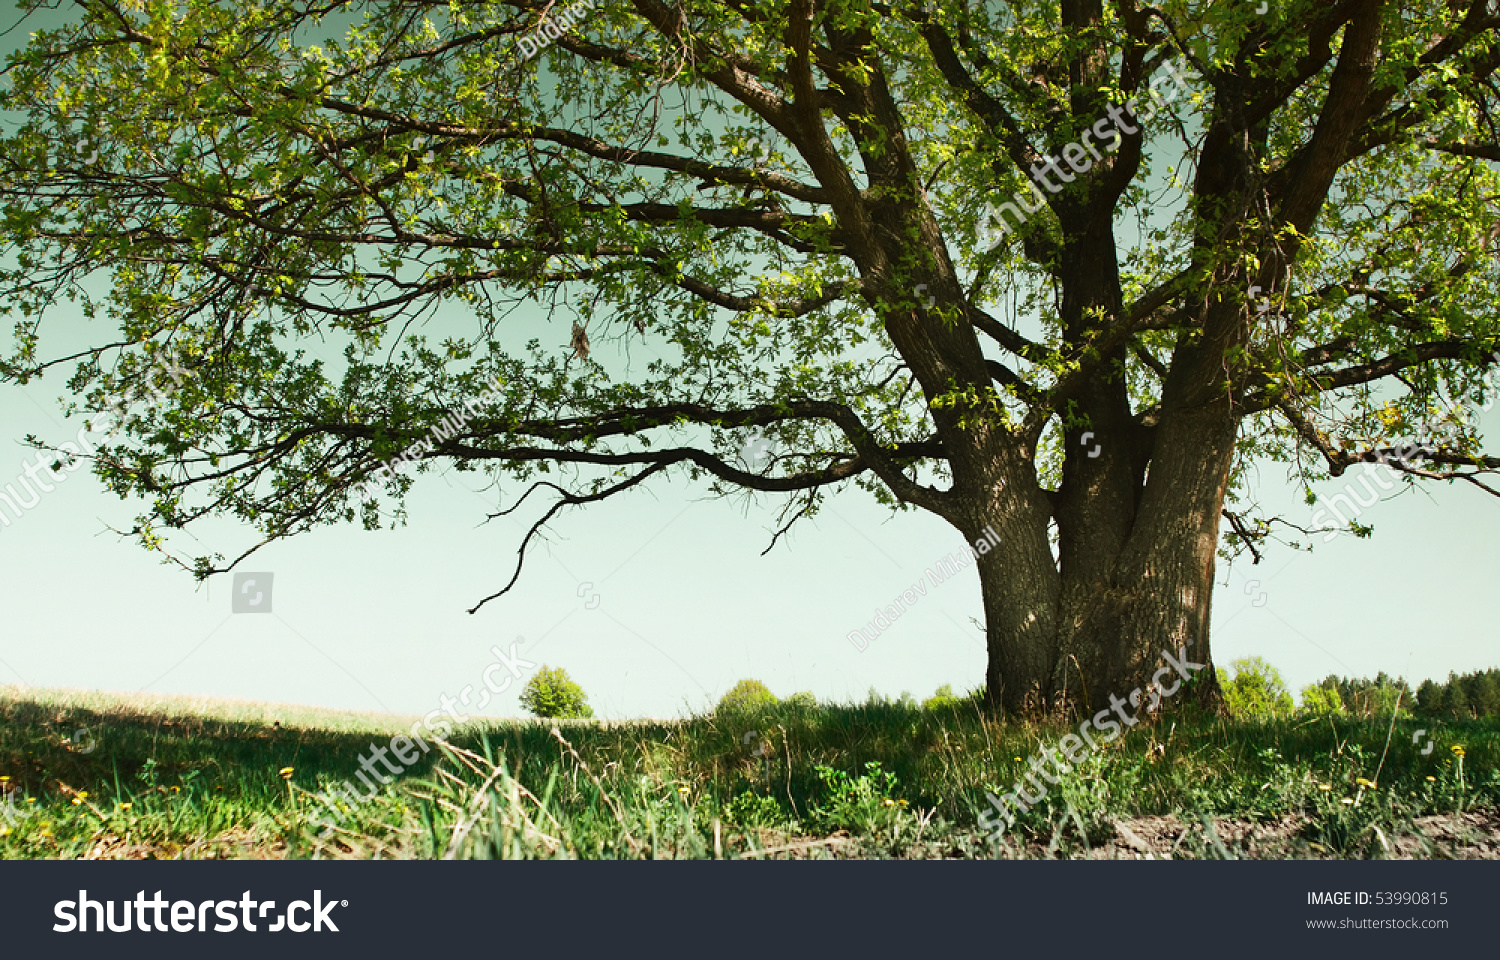 big tree with branches and land with herbs stock photo classic wooden kneeling chair classic wooden chair designs